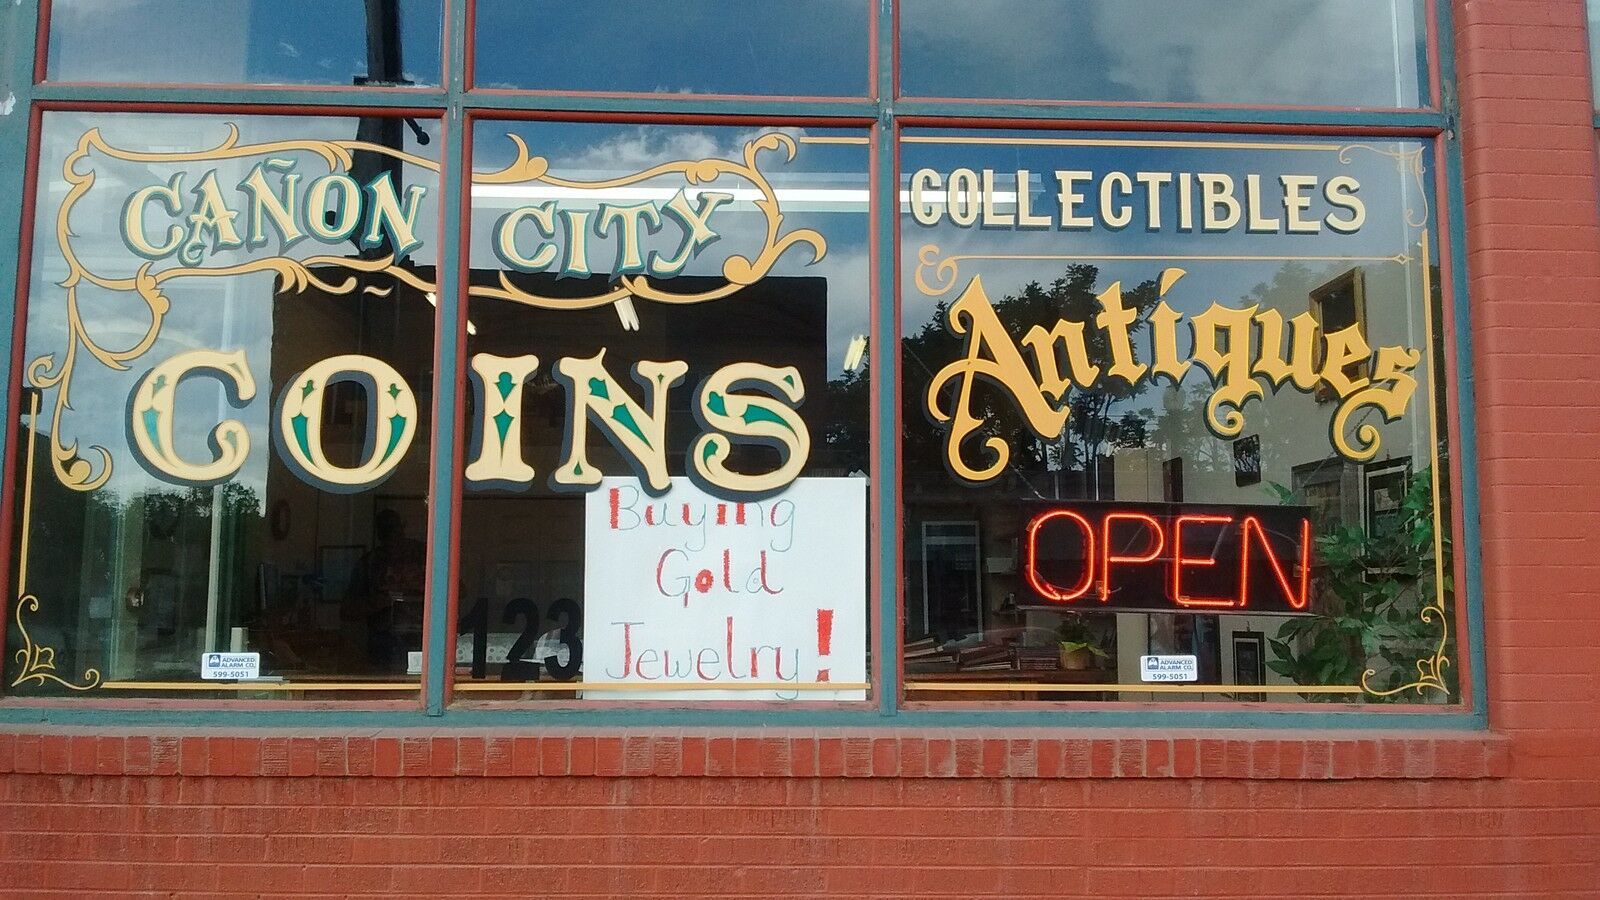 Canon City Coins and Collectibles